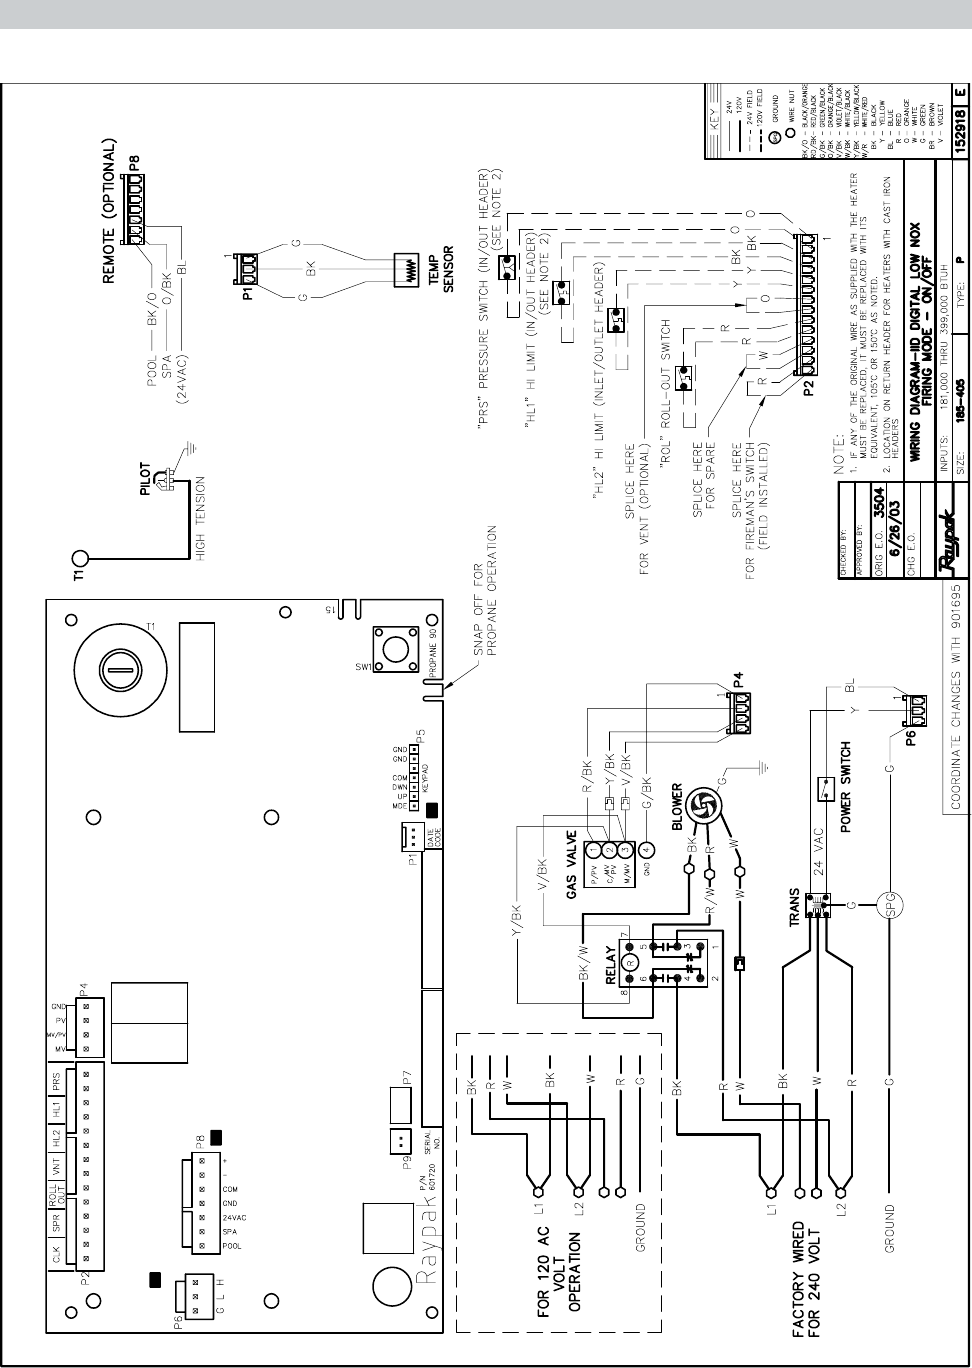 iid wiring diagram page 28 of raypak swimming pool heater rp2100 user guide wiring diagram iid low nox